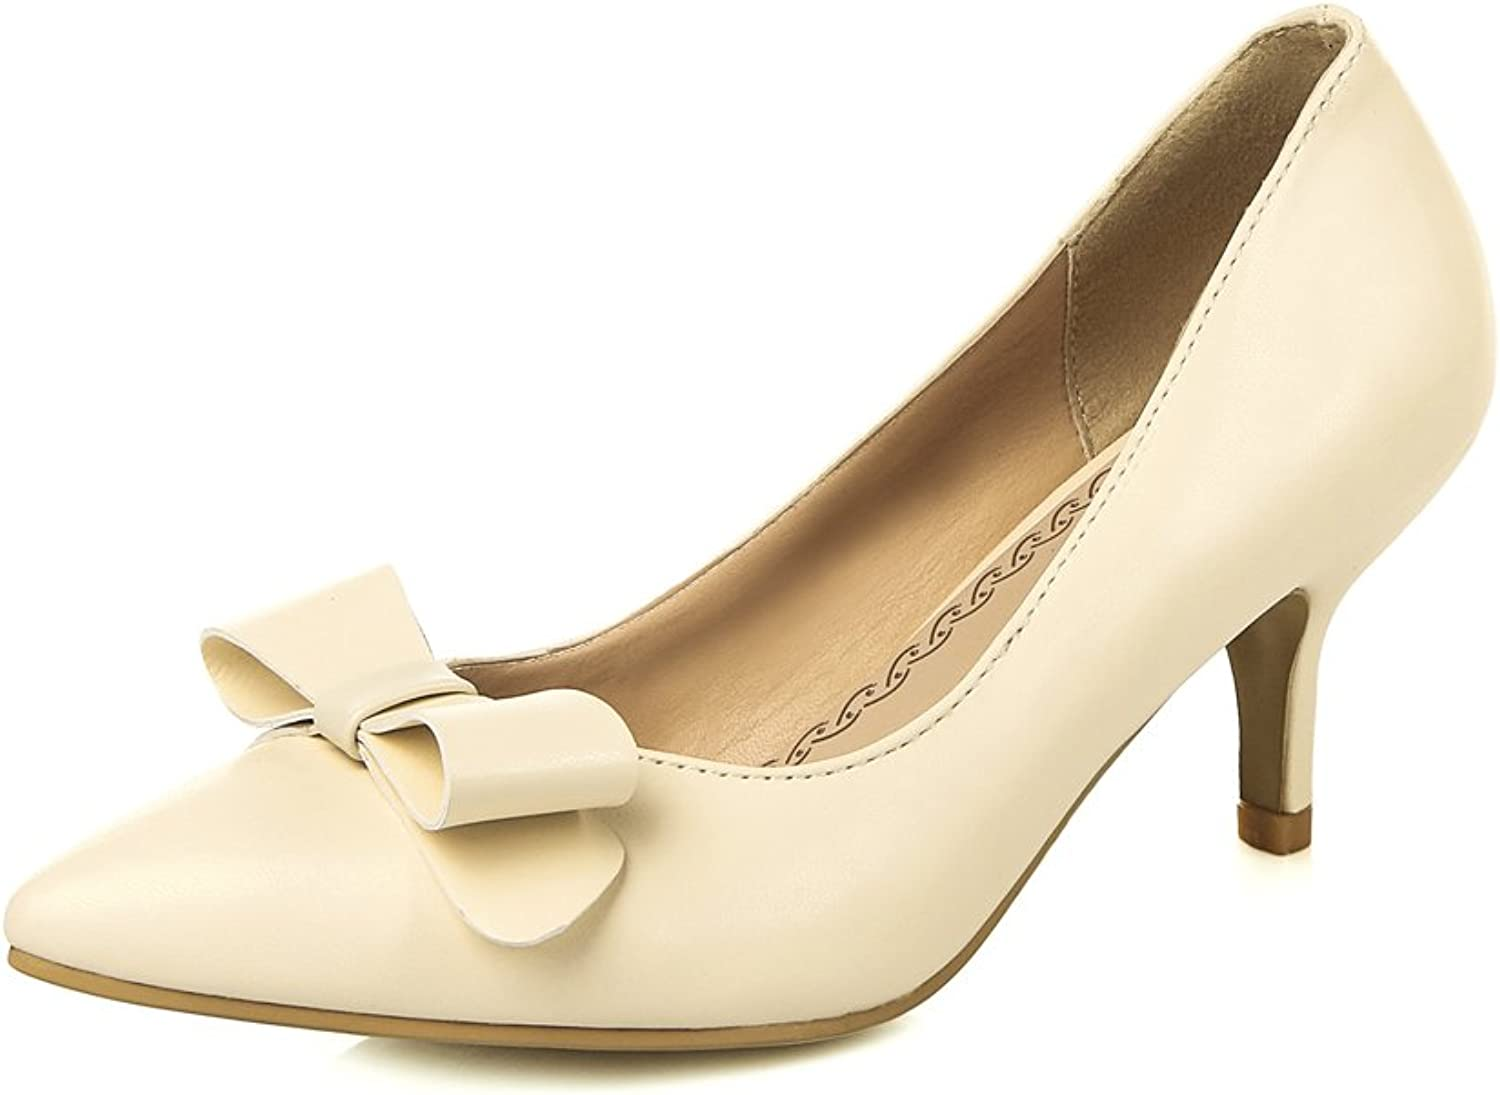 Lucksender Womens Pointed Toe Kitten Heels Fashion Pumps with Bowknot